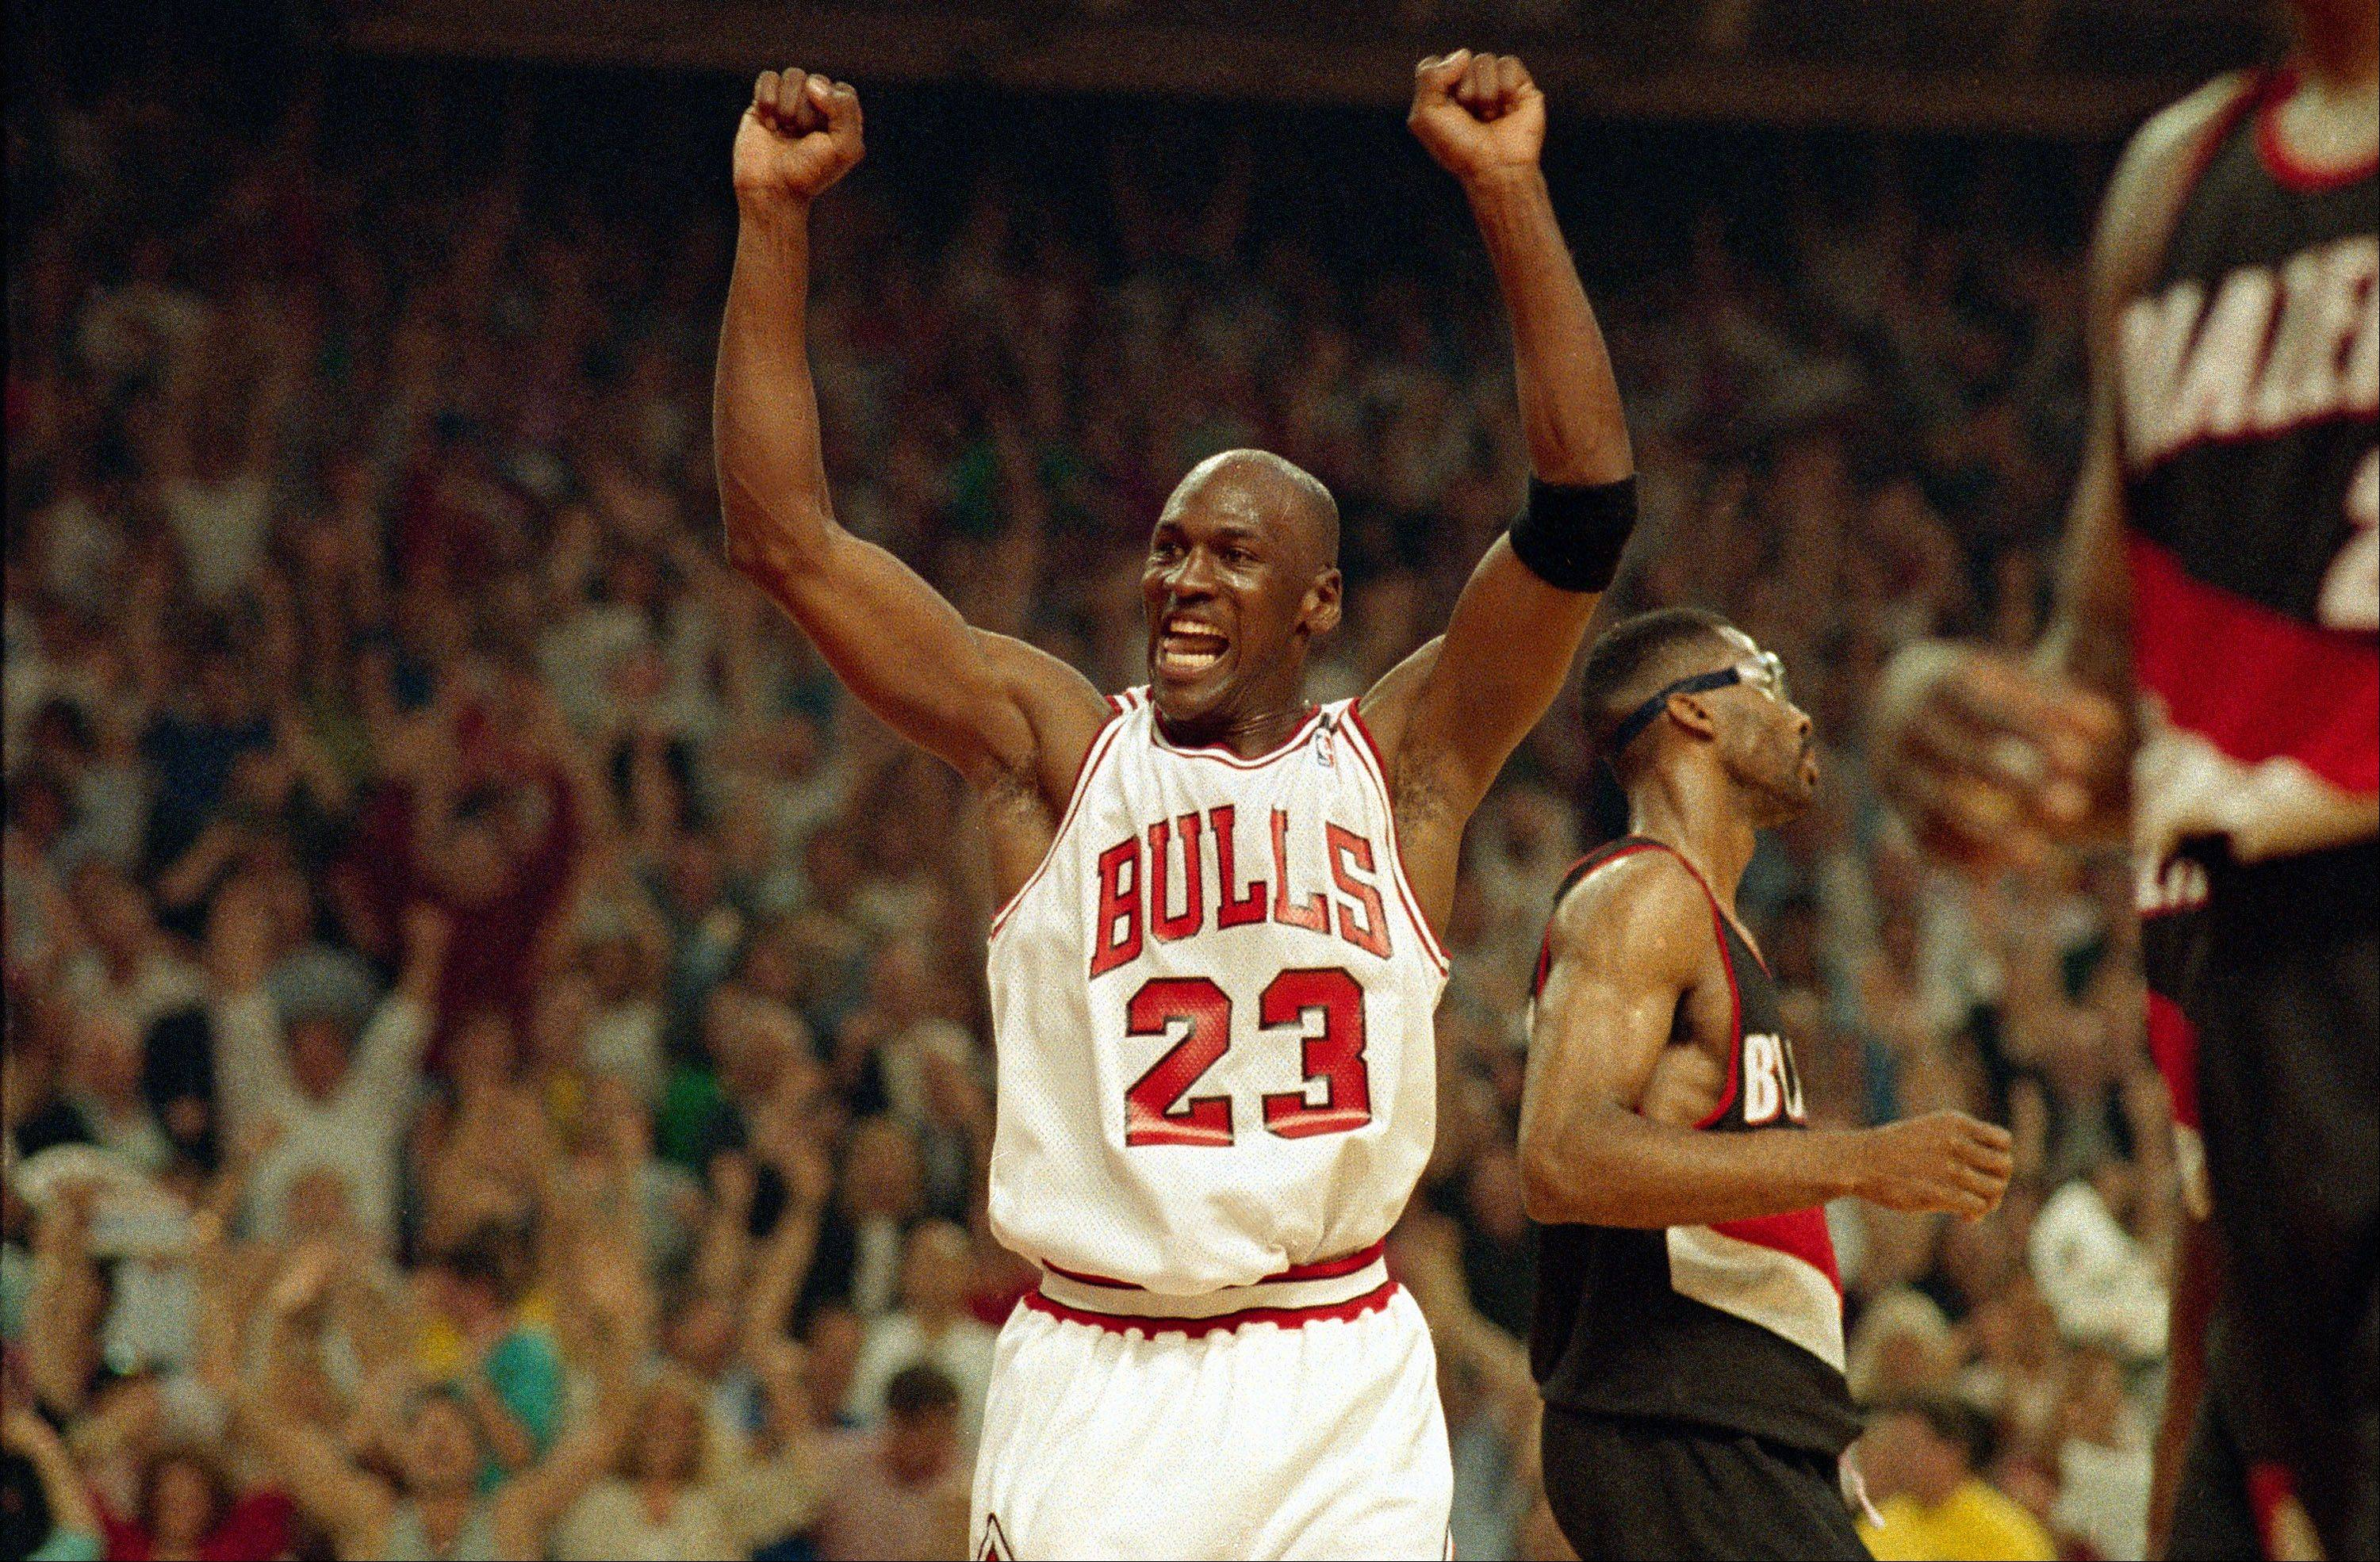 Michael Jordan celebrates the Bulls' win over the Portland Trail Blazers in the NBA Finals in Chicago, June 14, 1992. The Bulls beat the Trail Blazers 97-93 to repeat as champions.